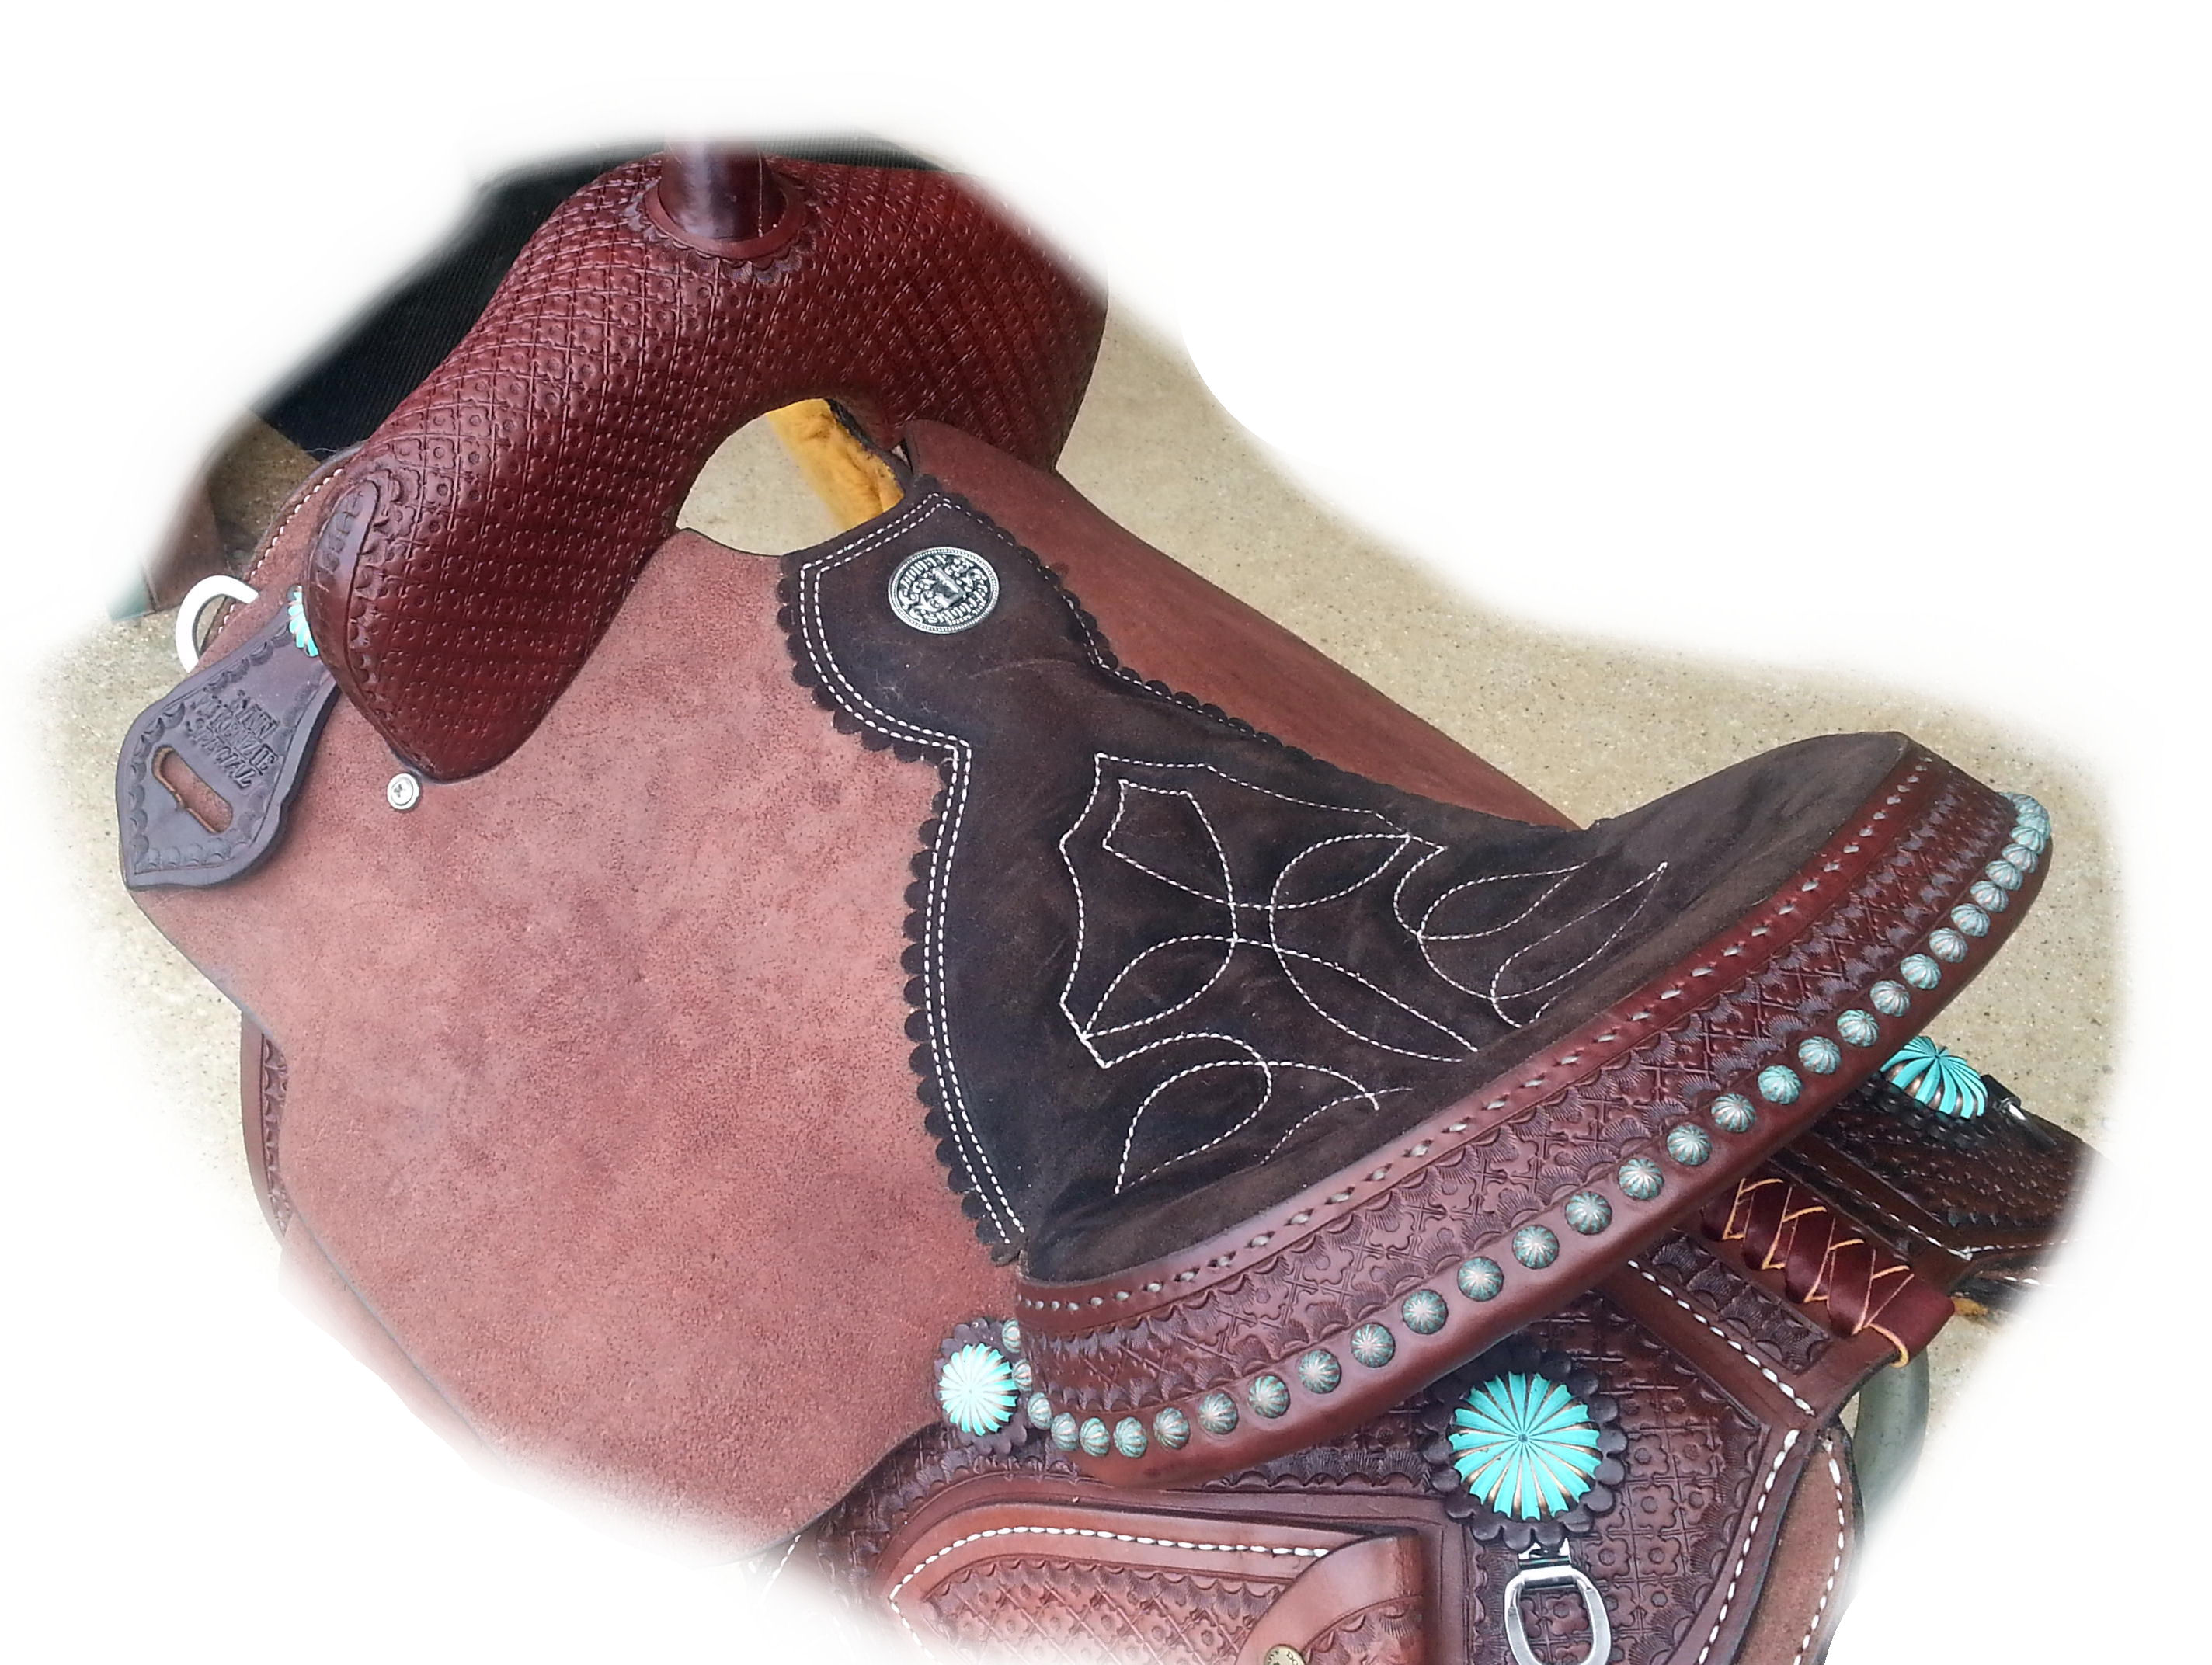 LM Special. Brown leather, Patina dots, Turq. parachute conchos. Seat view